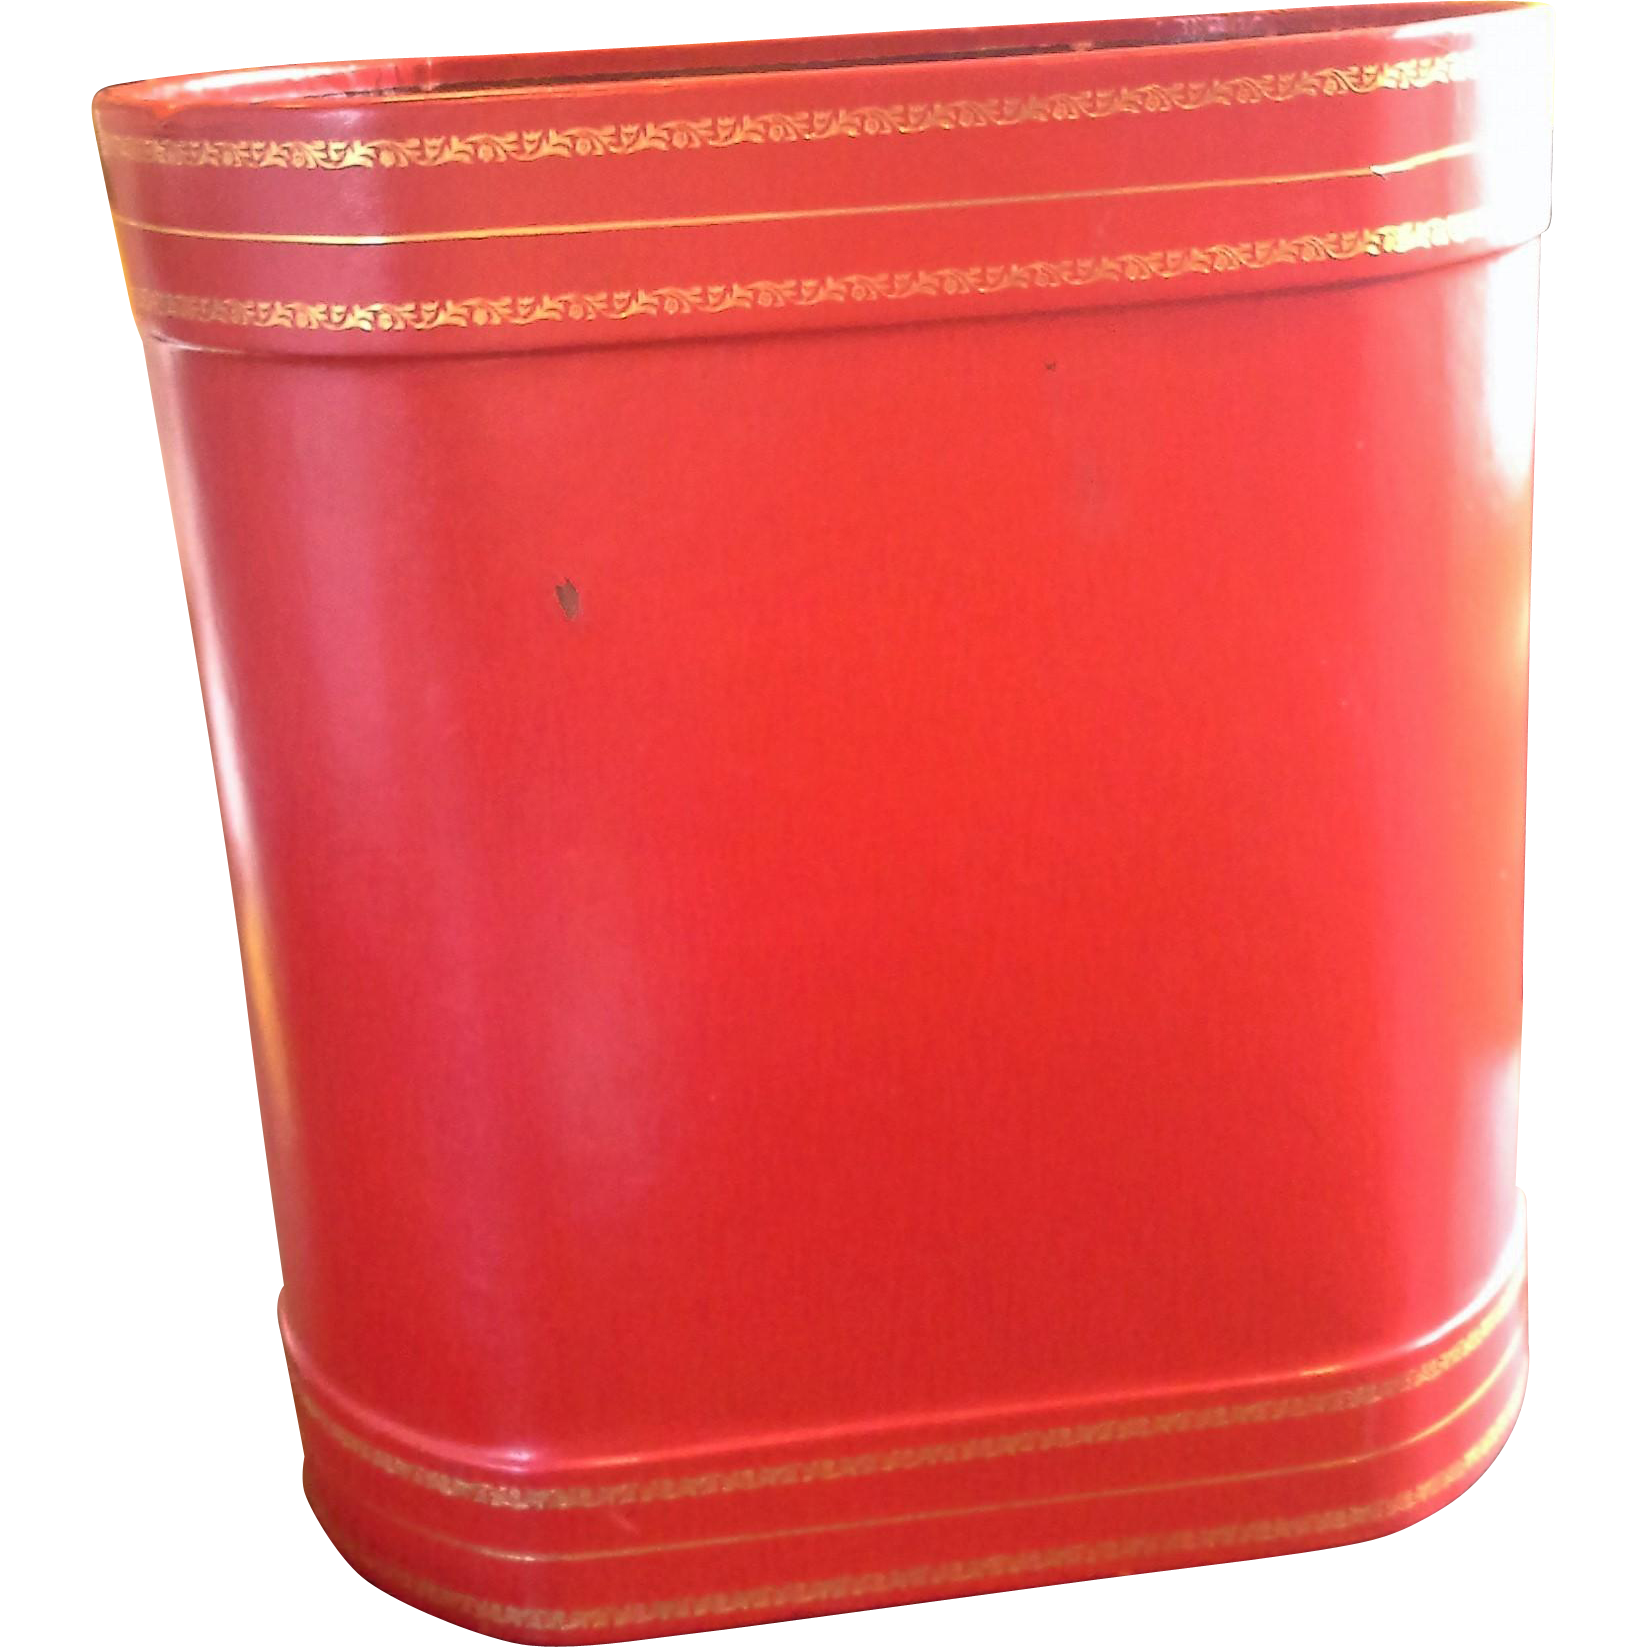 Red Leather Gilt Tooled Borders Oval Wastebasket Waste Paper Basket Office